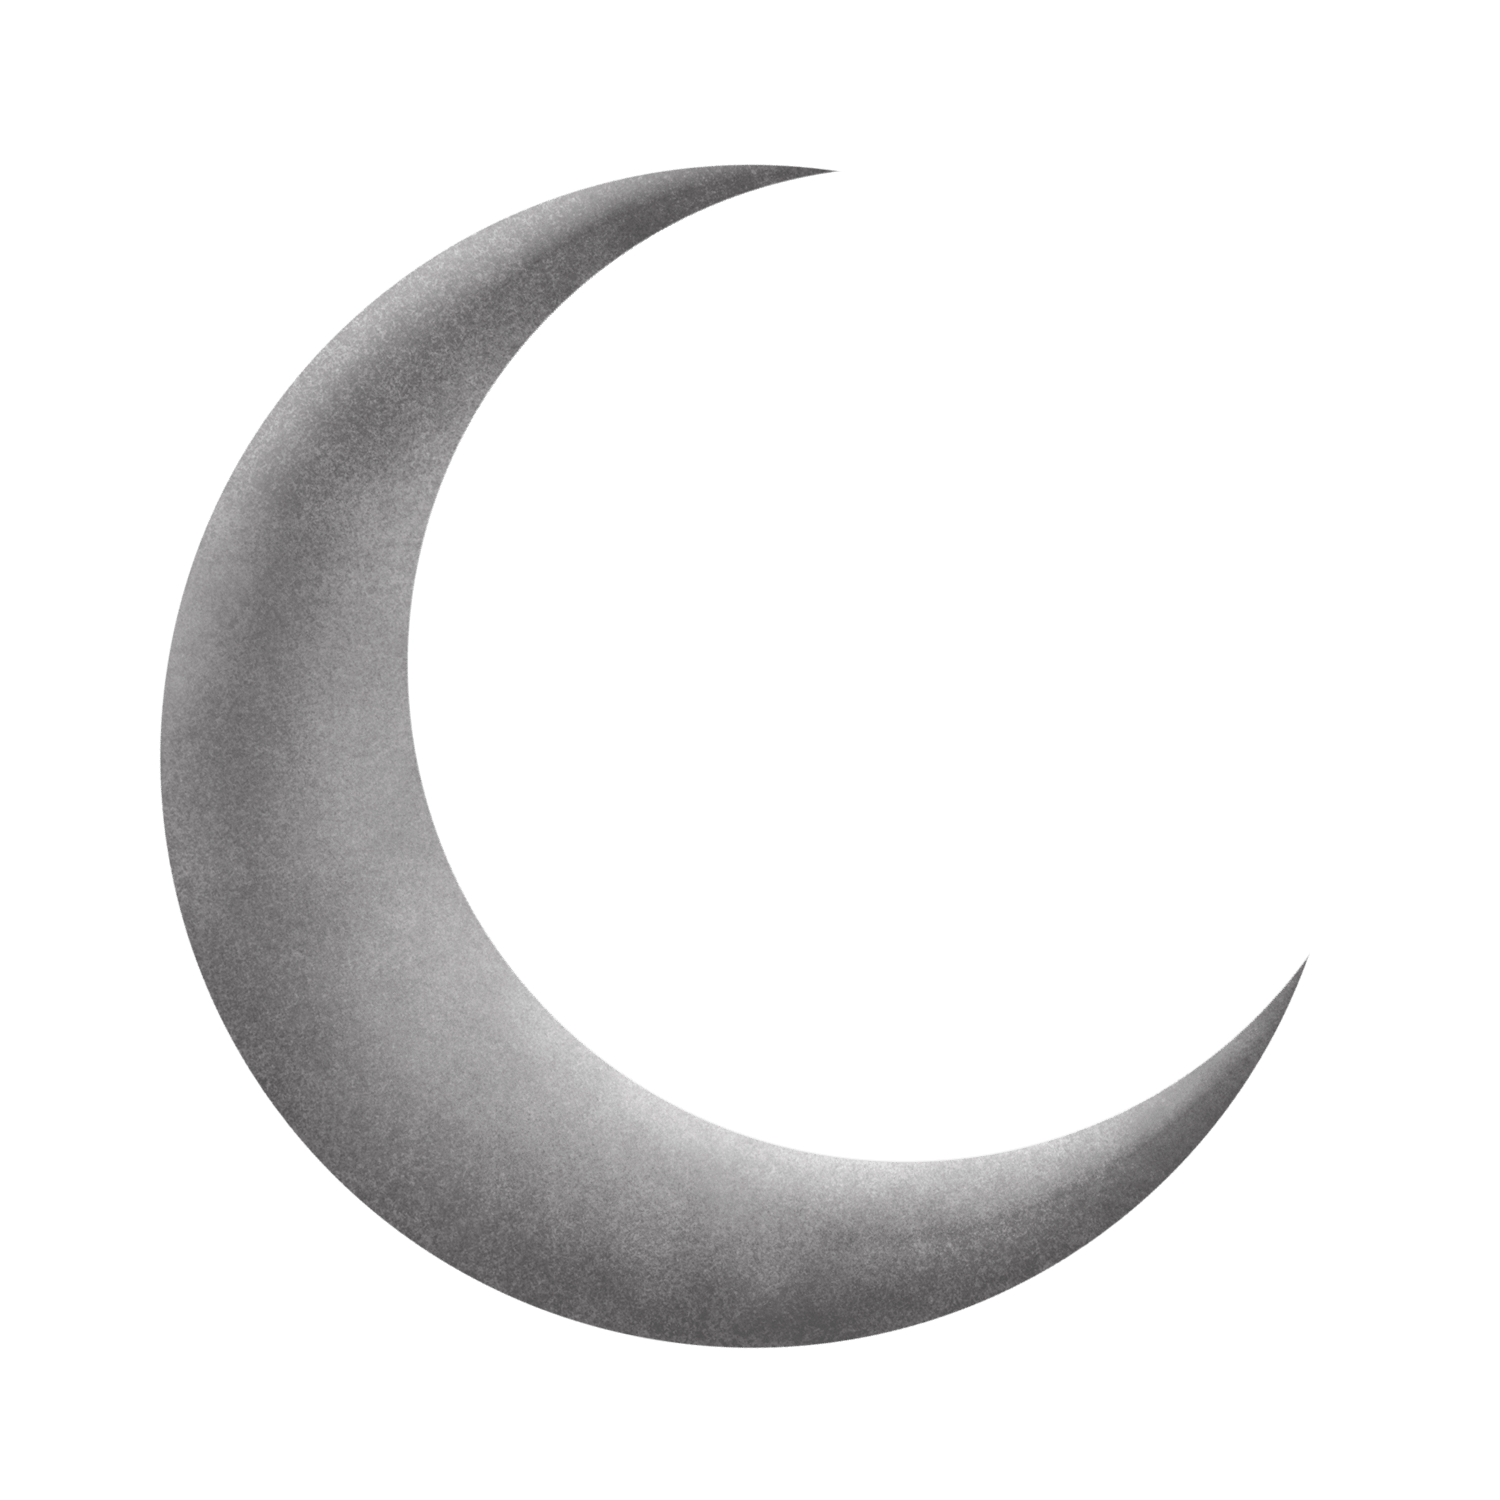 Silver grey crescent png. Clipart moon transparent background